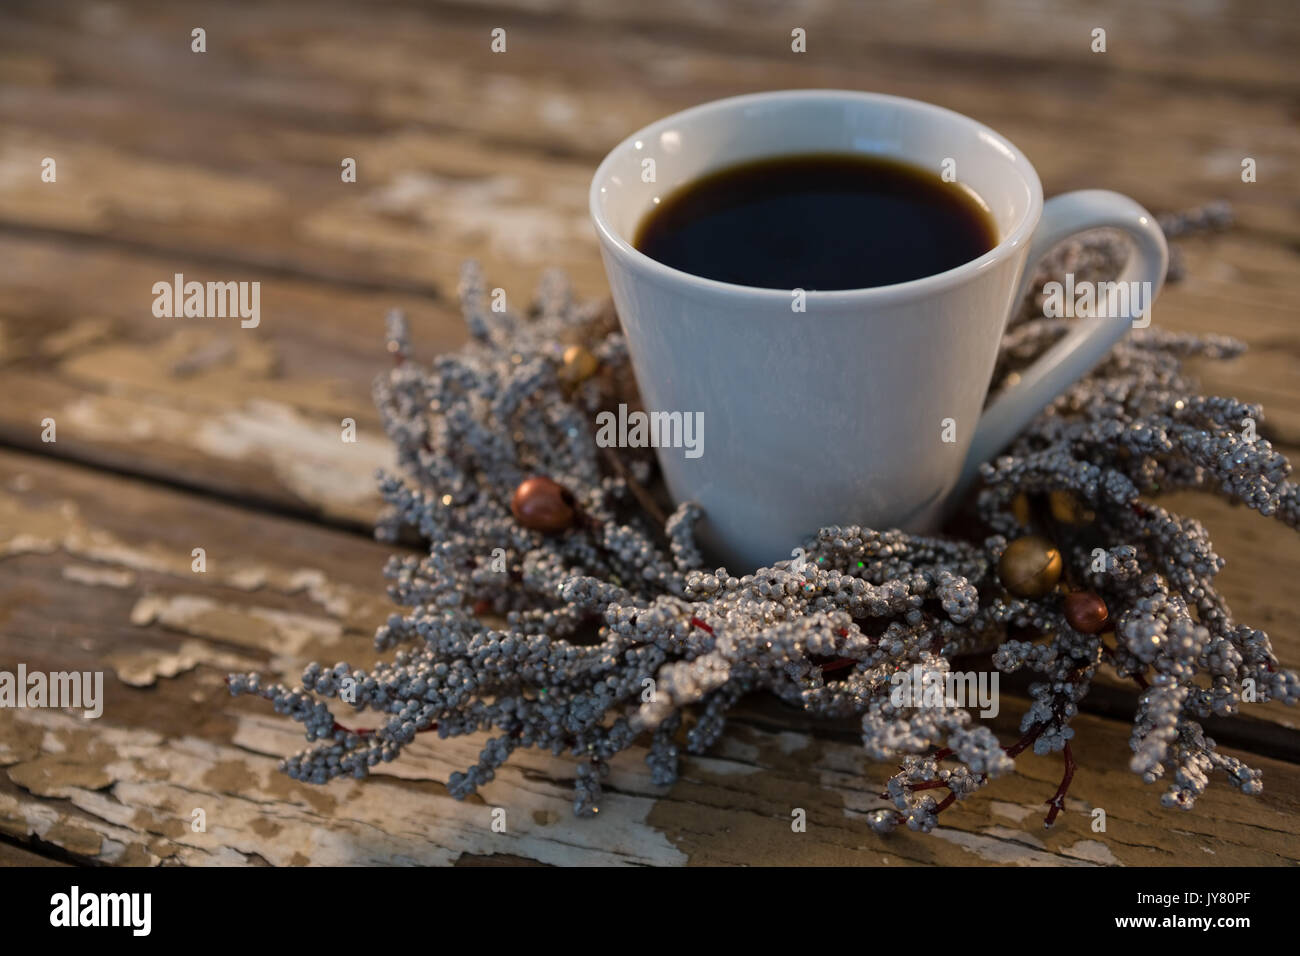 Close up of black coffee on dried plant at wooden table - Stock Image